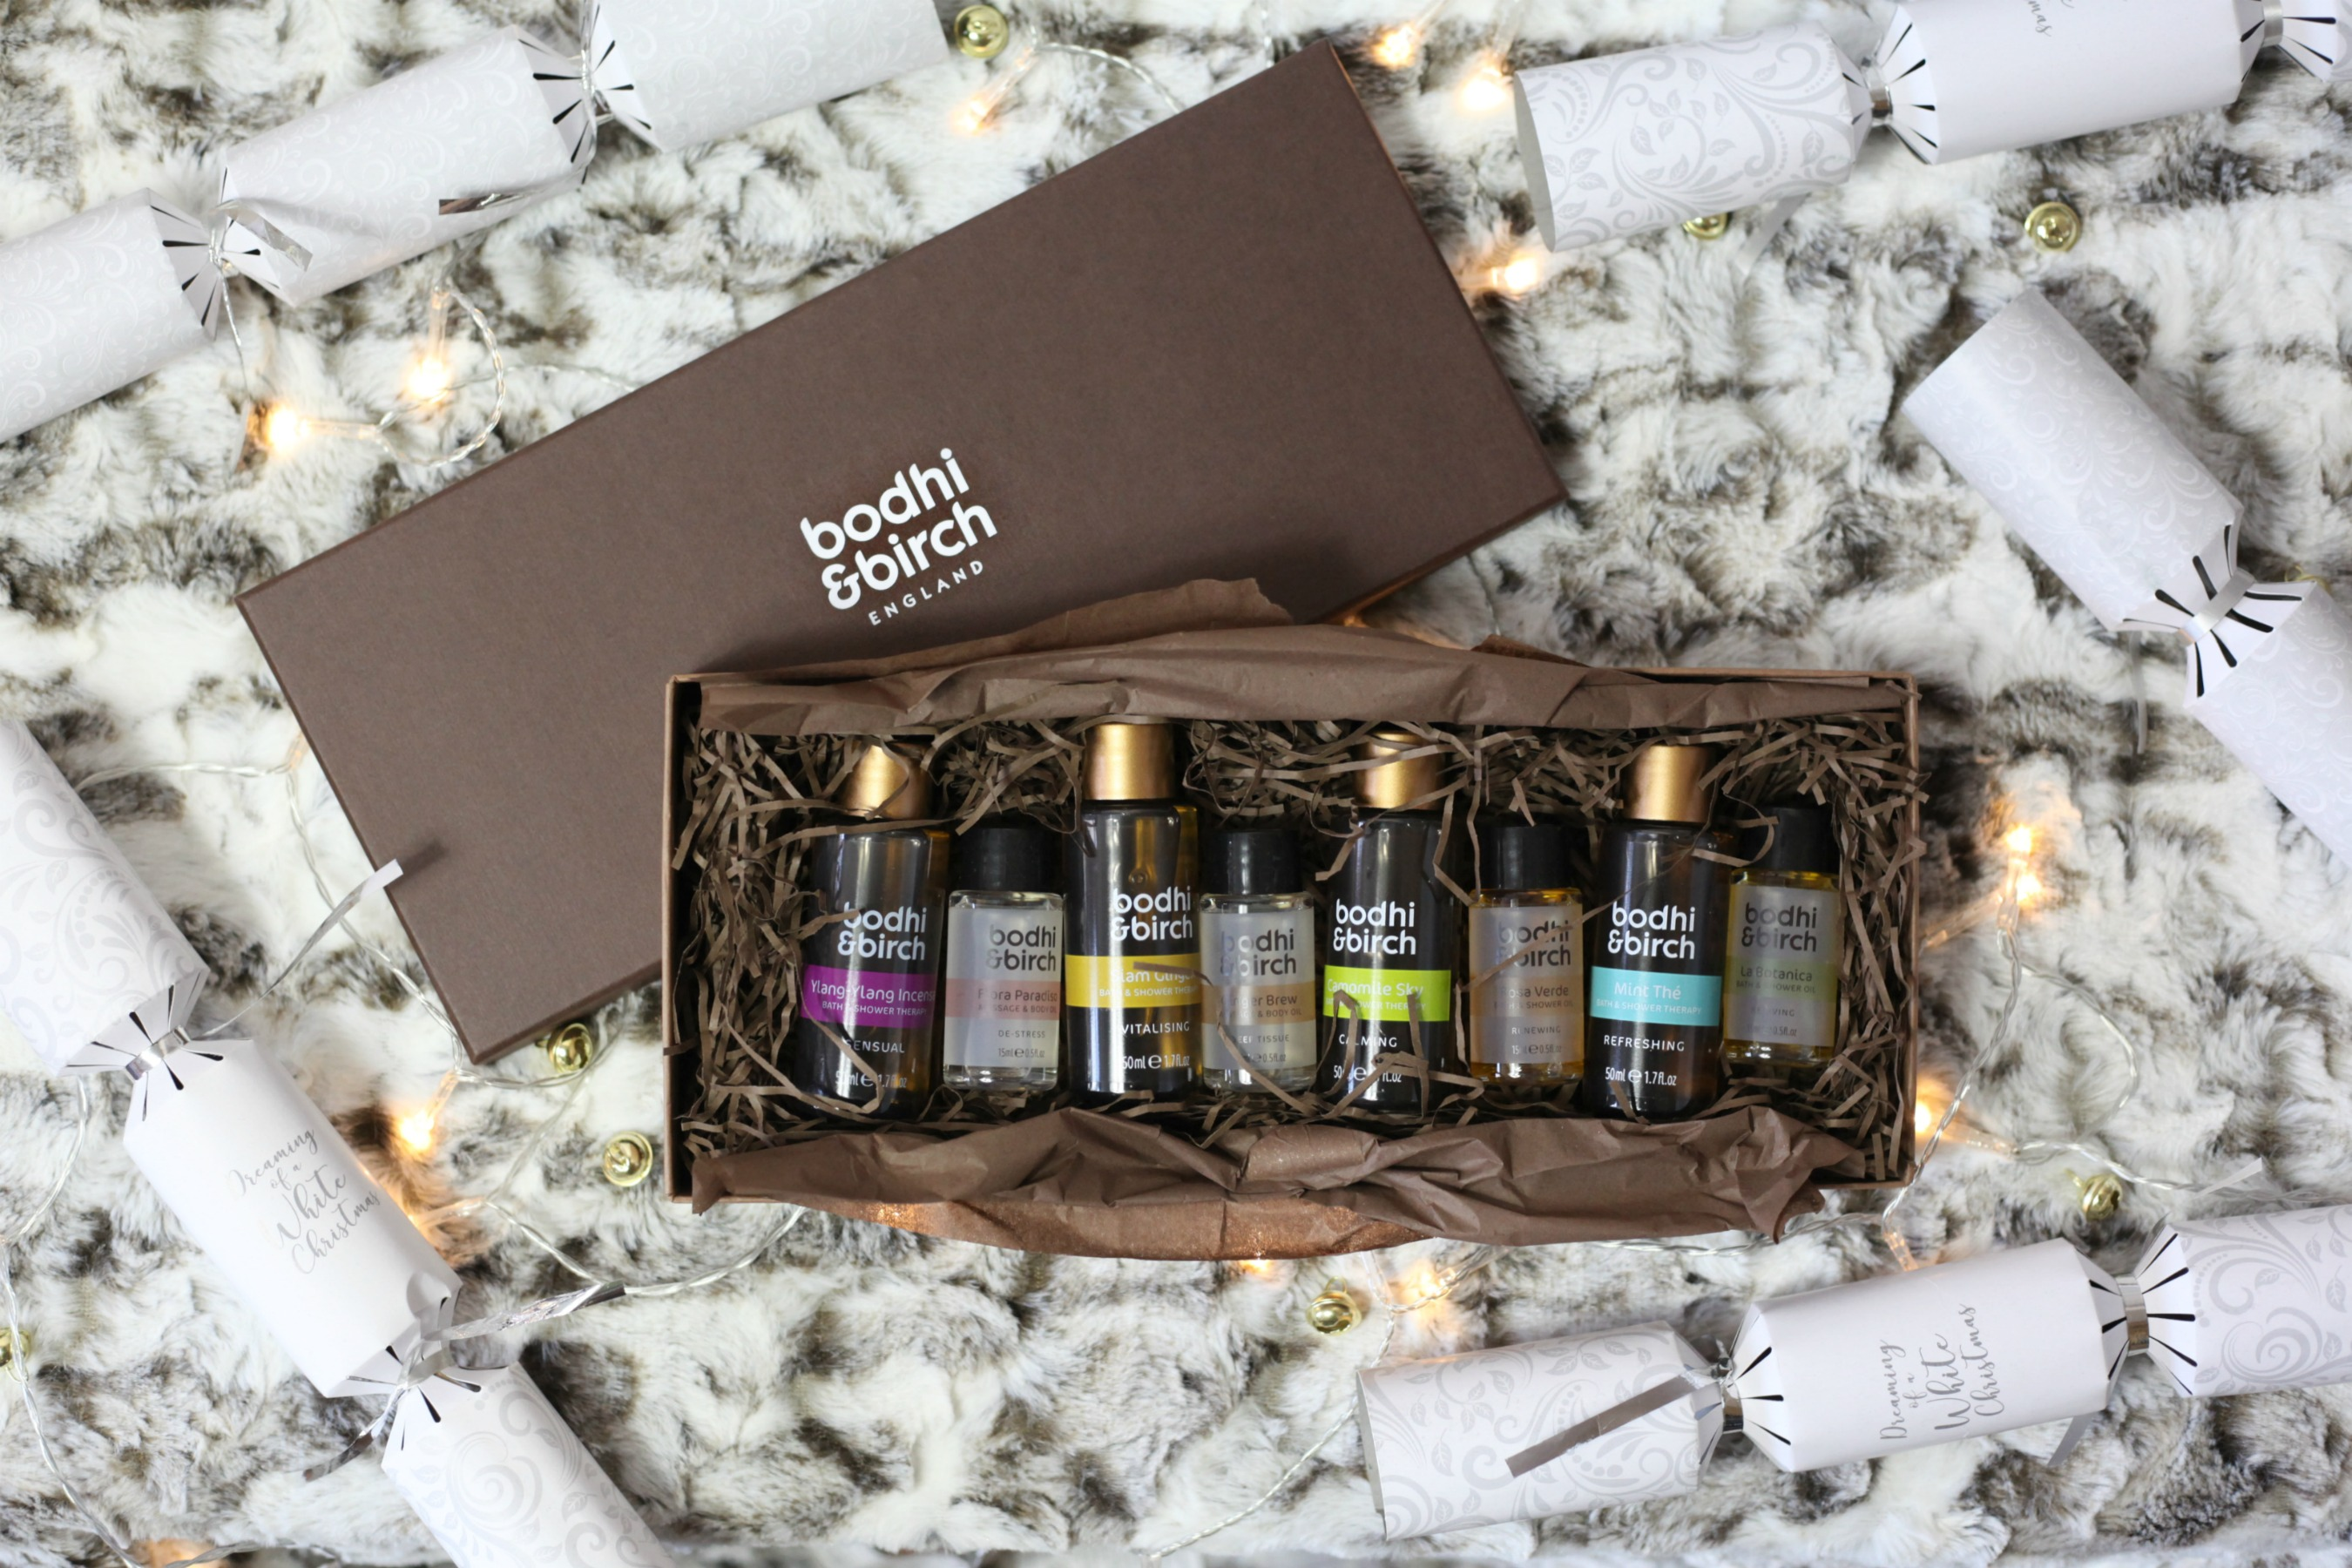 Luxurious Christmas gift ideas from bodhi & birch